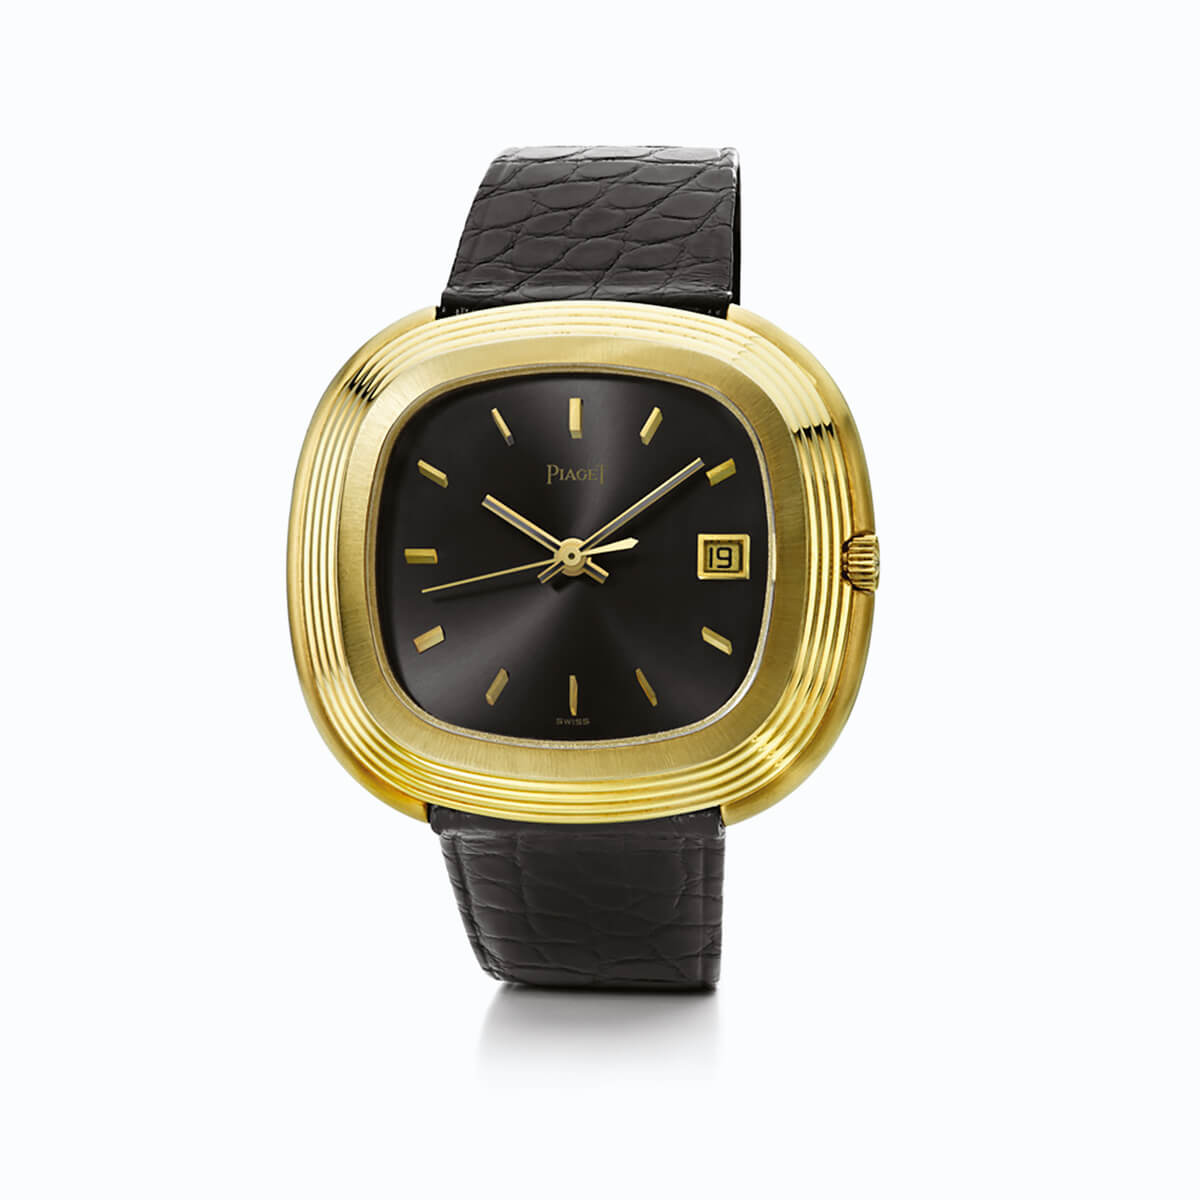 Piaget Andy Warhol watch